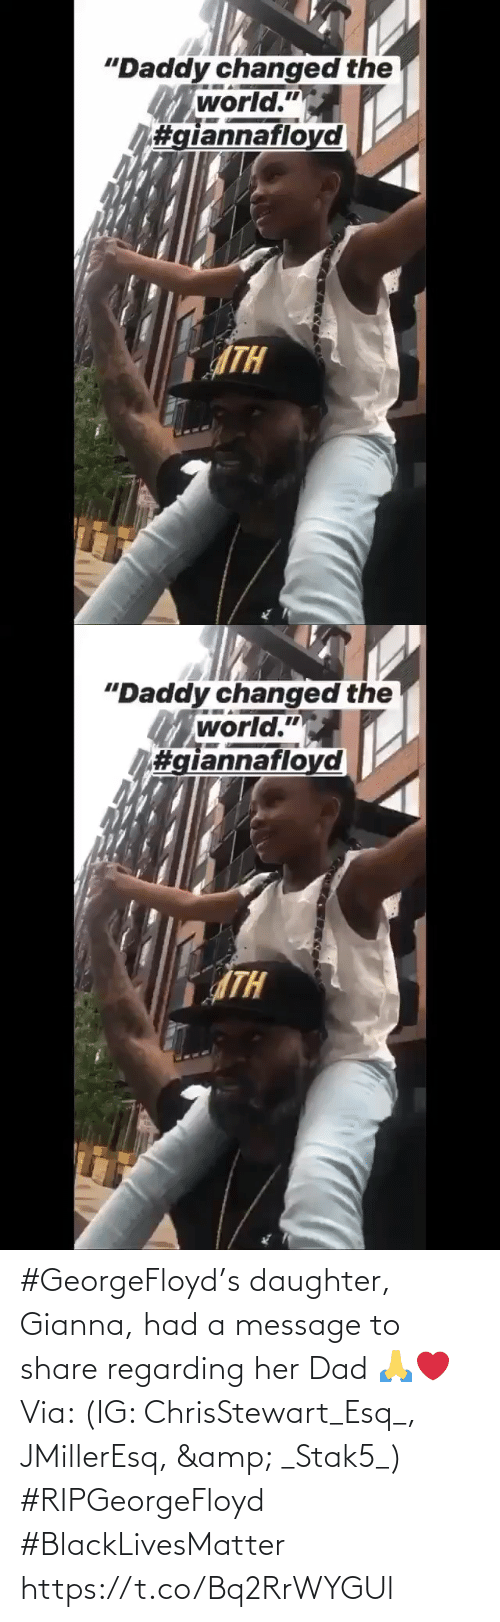 share: #GeorgeFloyd's daughter, Gianna, had a message to share regarding her Dad 🙏❤️ Via: (IG: ChrisStewart_Esq_, JMillerEsq, & _Stak5_) #RIPGeorgeFloyd #BlackLivesMatter https://t.co/Bq2RrWYGUl